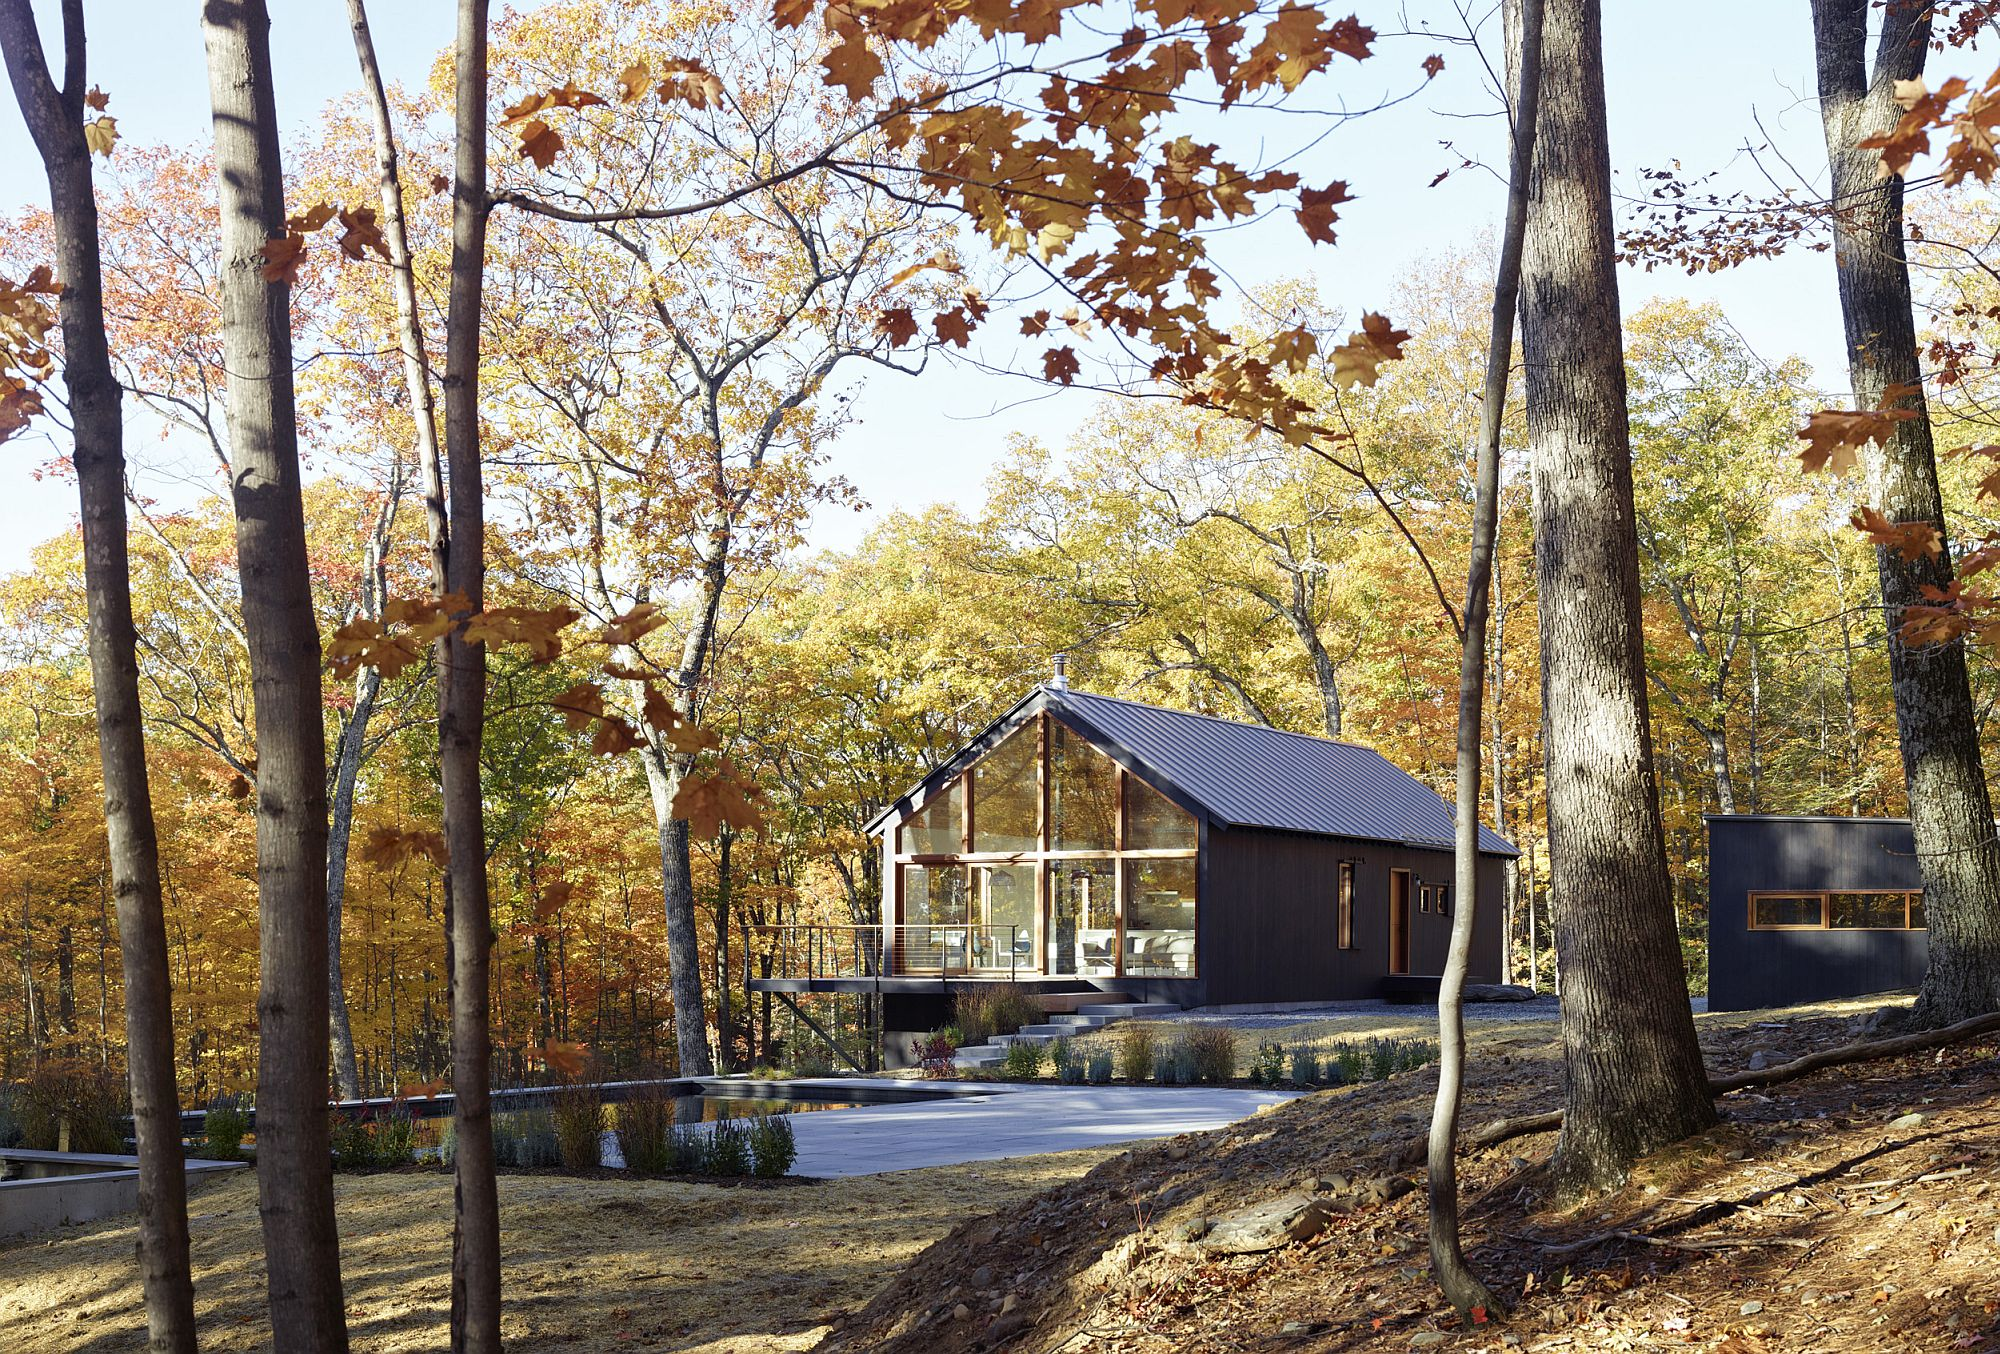 Natural-forest-around-the-cabins-is-left-as-undisturbed-as-possible